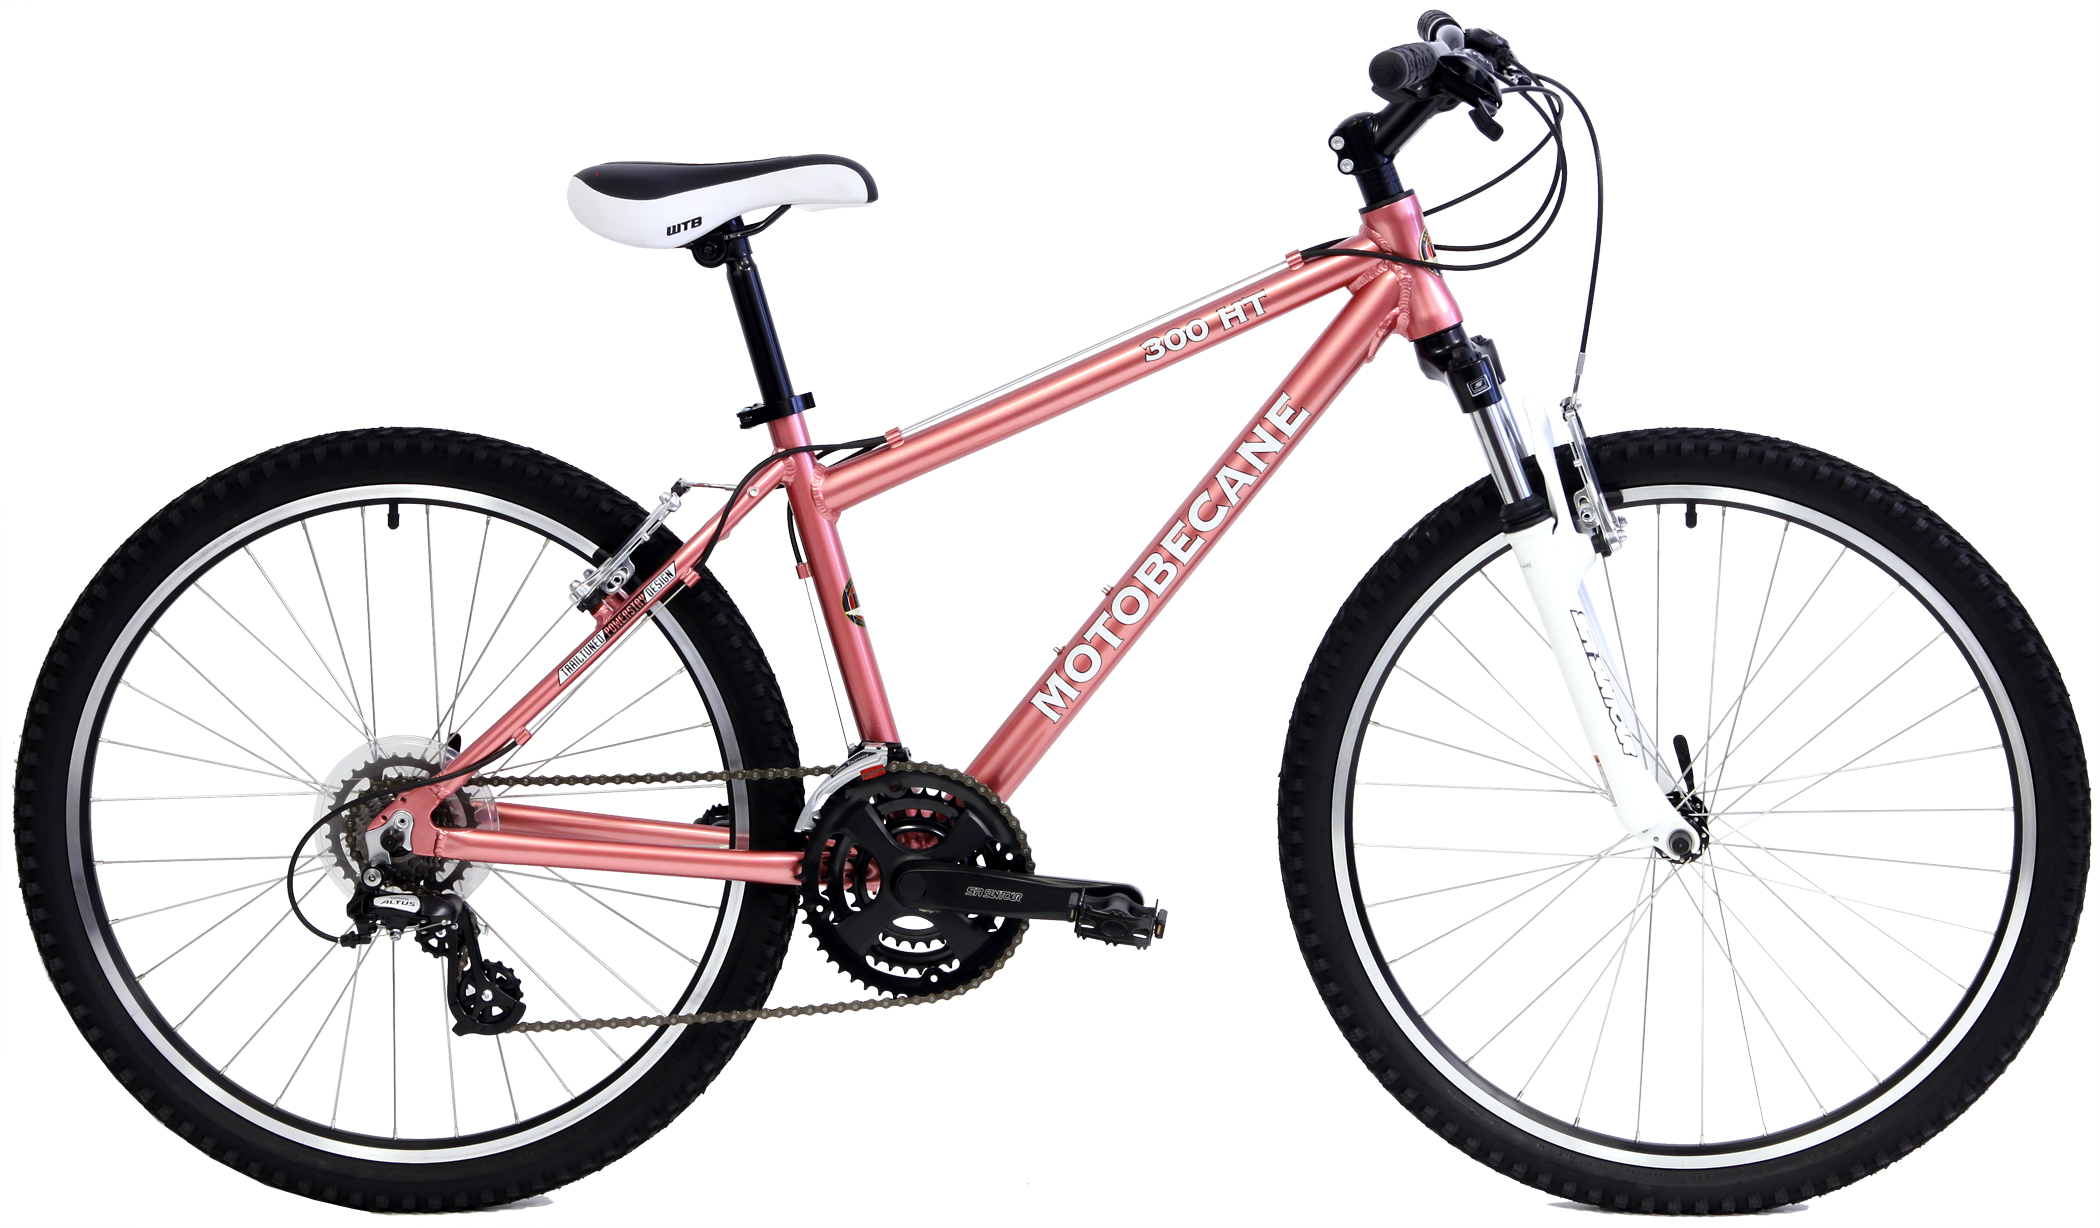 300HTW - WOMEN'S ALUMINUM 21sp MOUNTAIN BIKE